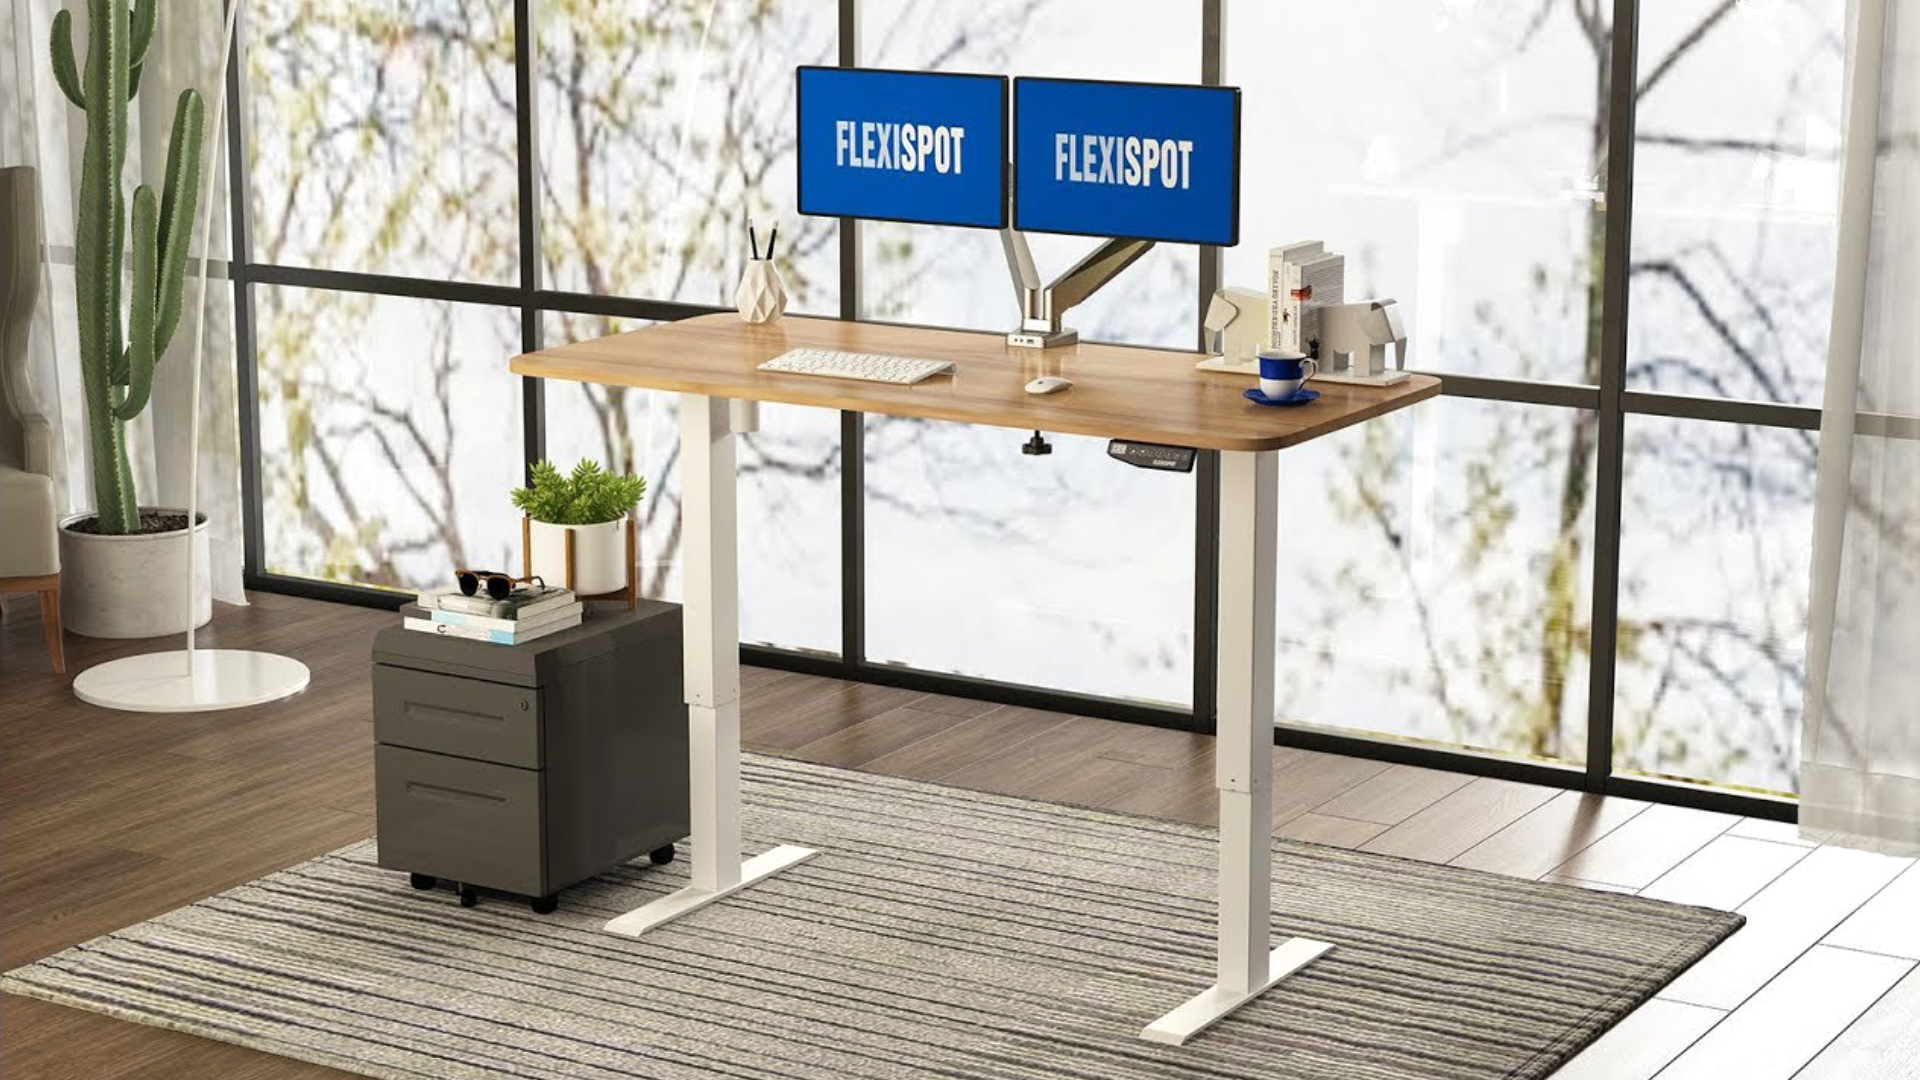 Flexispot's adjustable desks are currently 30% cheaper ahead of Amazon Prime Day